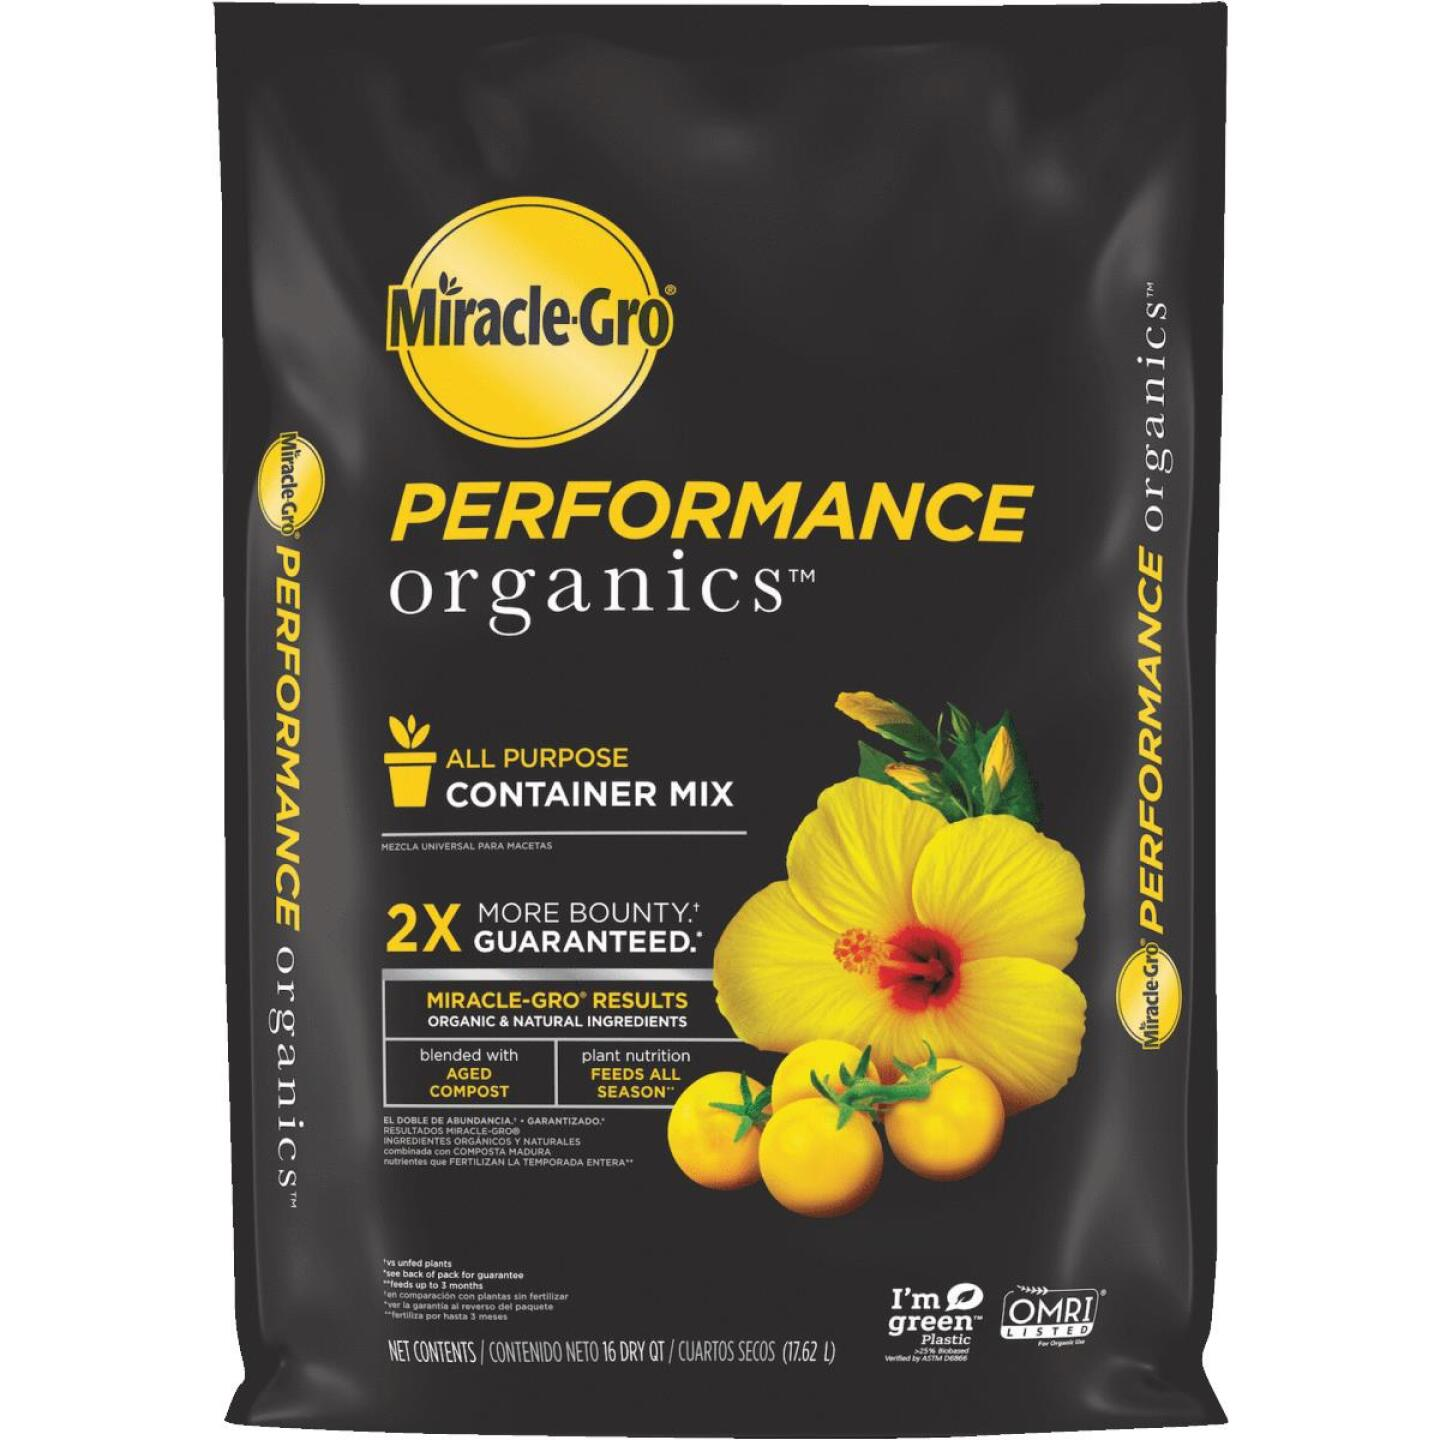 Miracle-Gro Performance Organics 16 Qt. All Purpose Container Mix Image 1